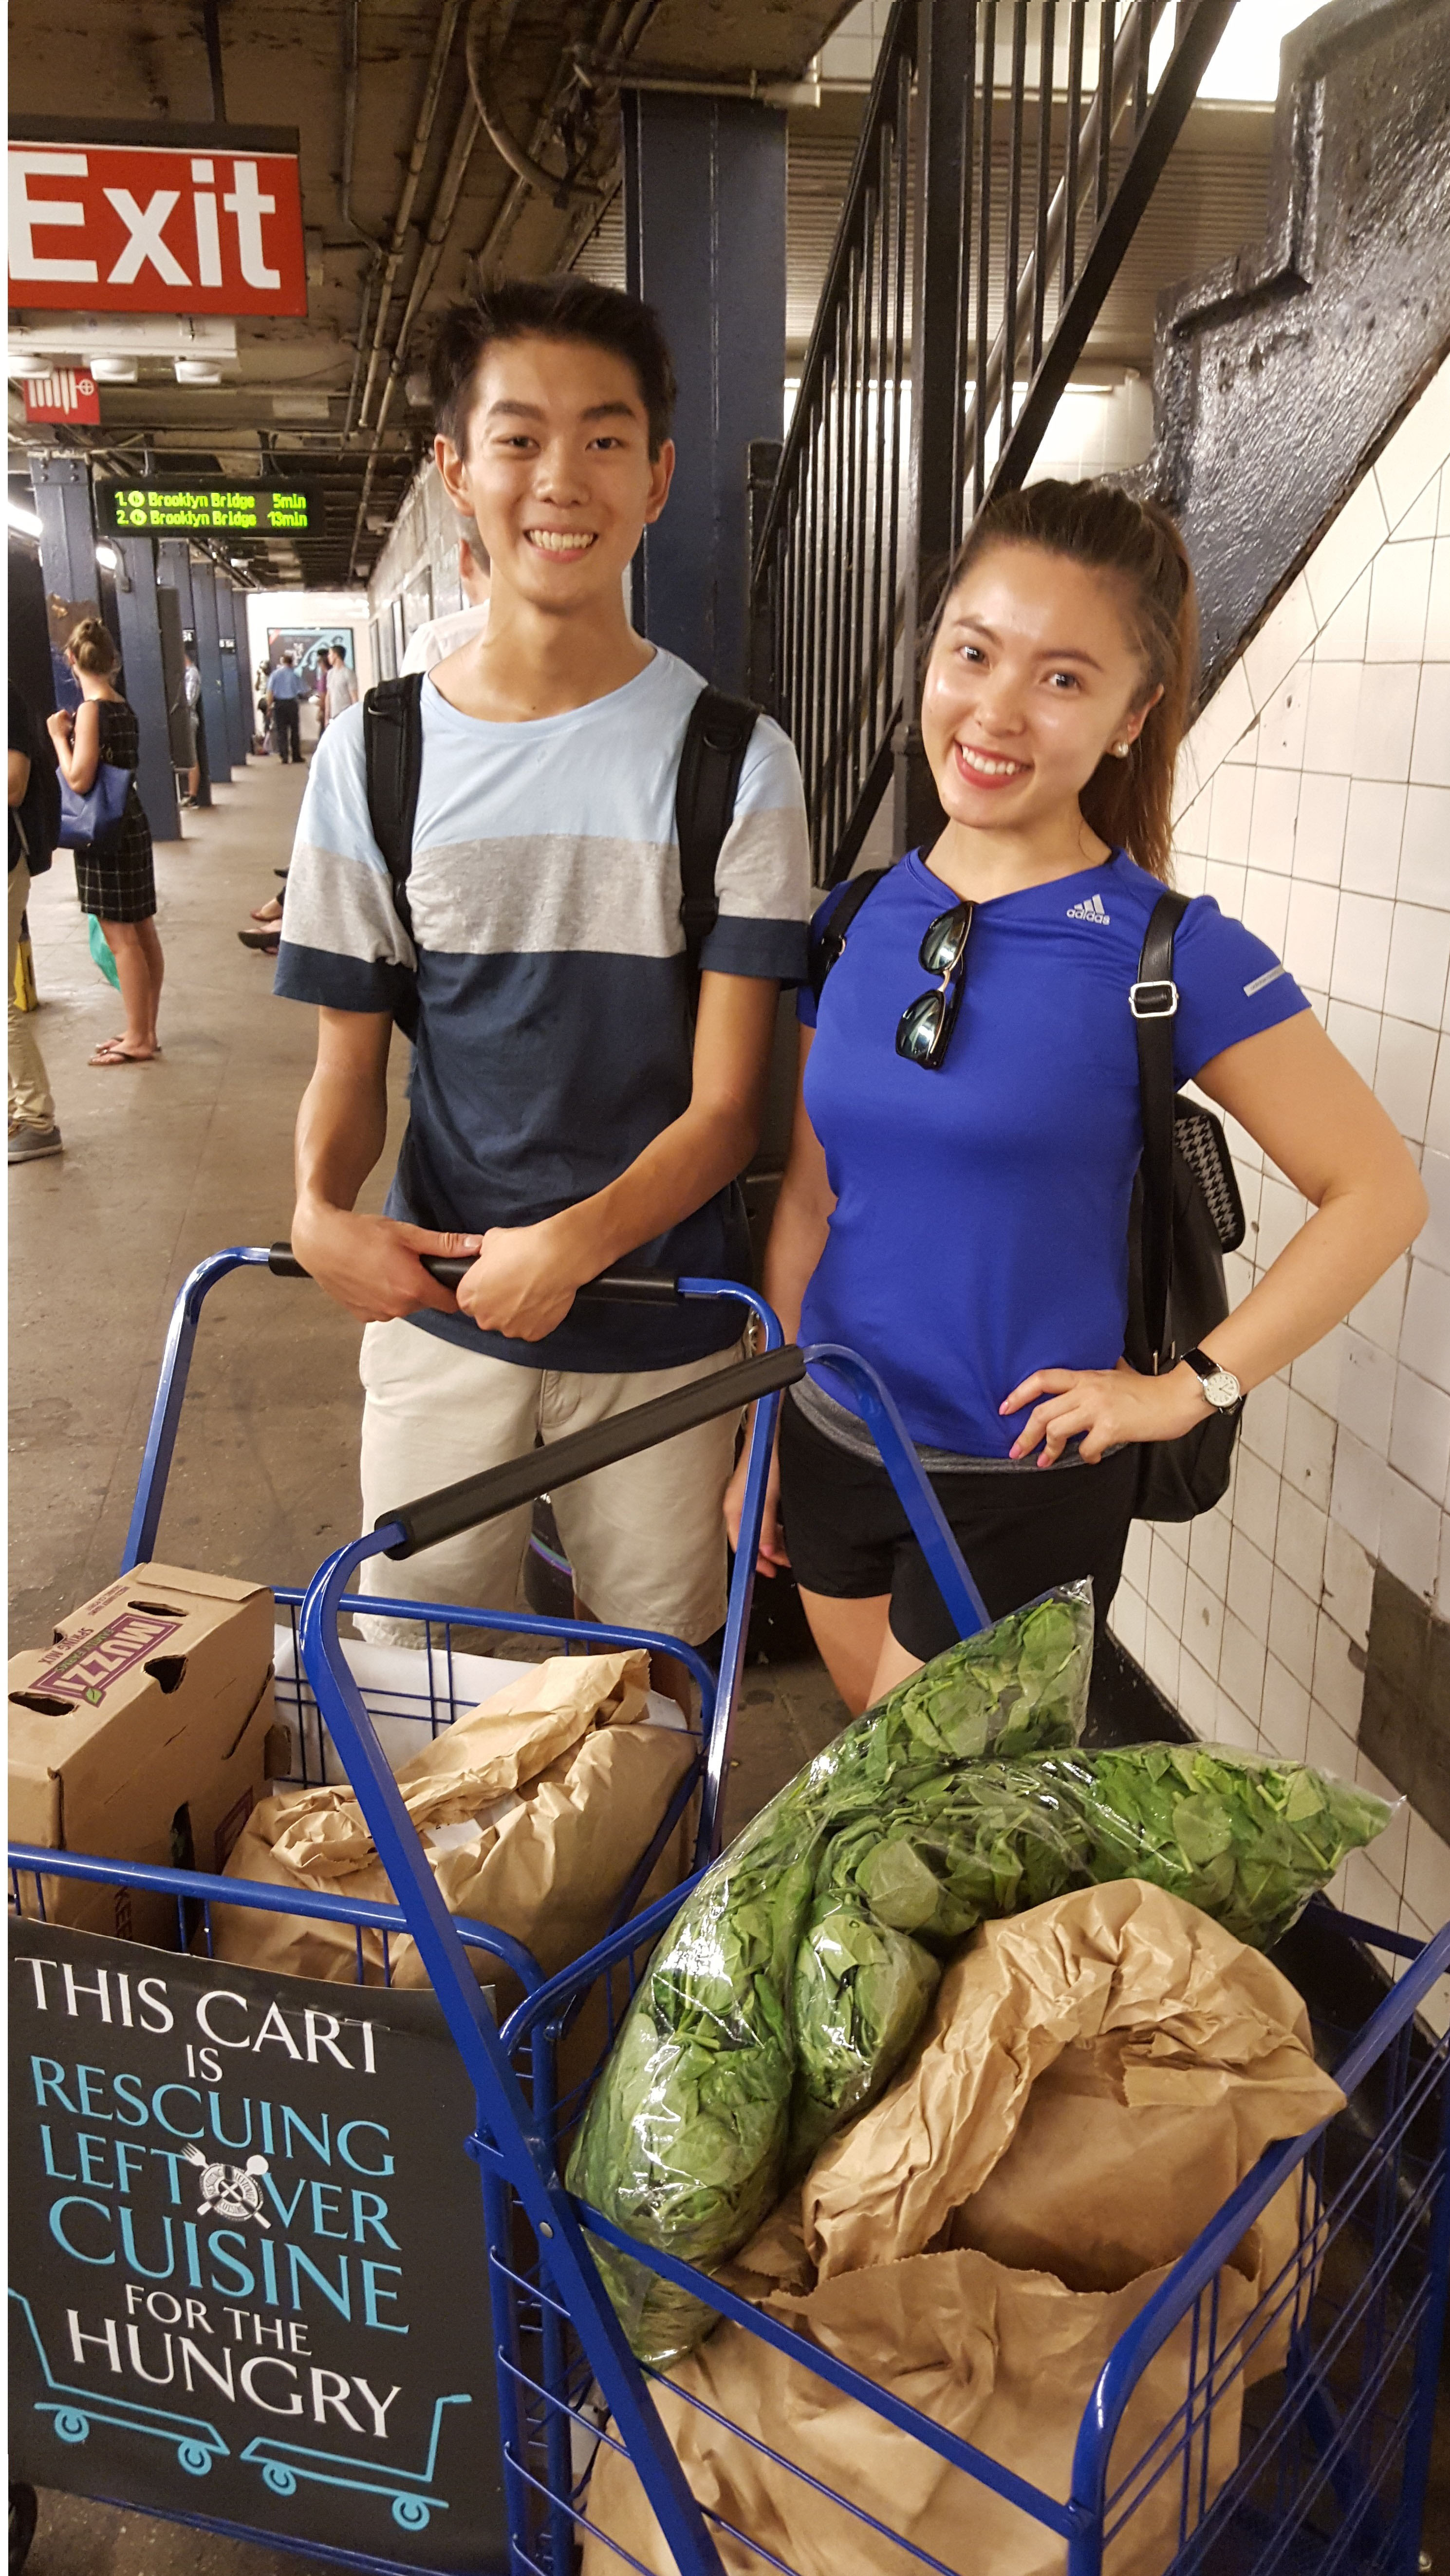 Man and woman rescue food in carts for Rescuing Leftover Cuisine